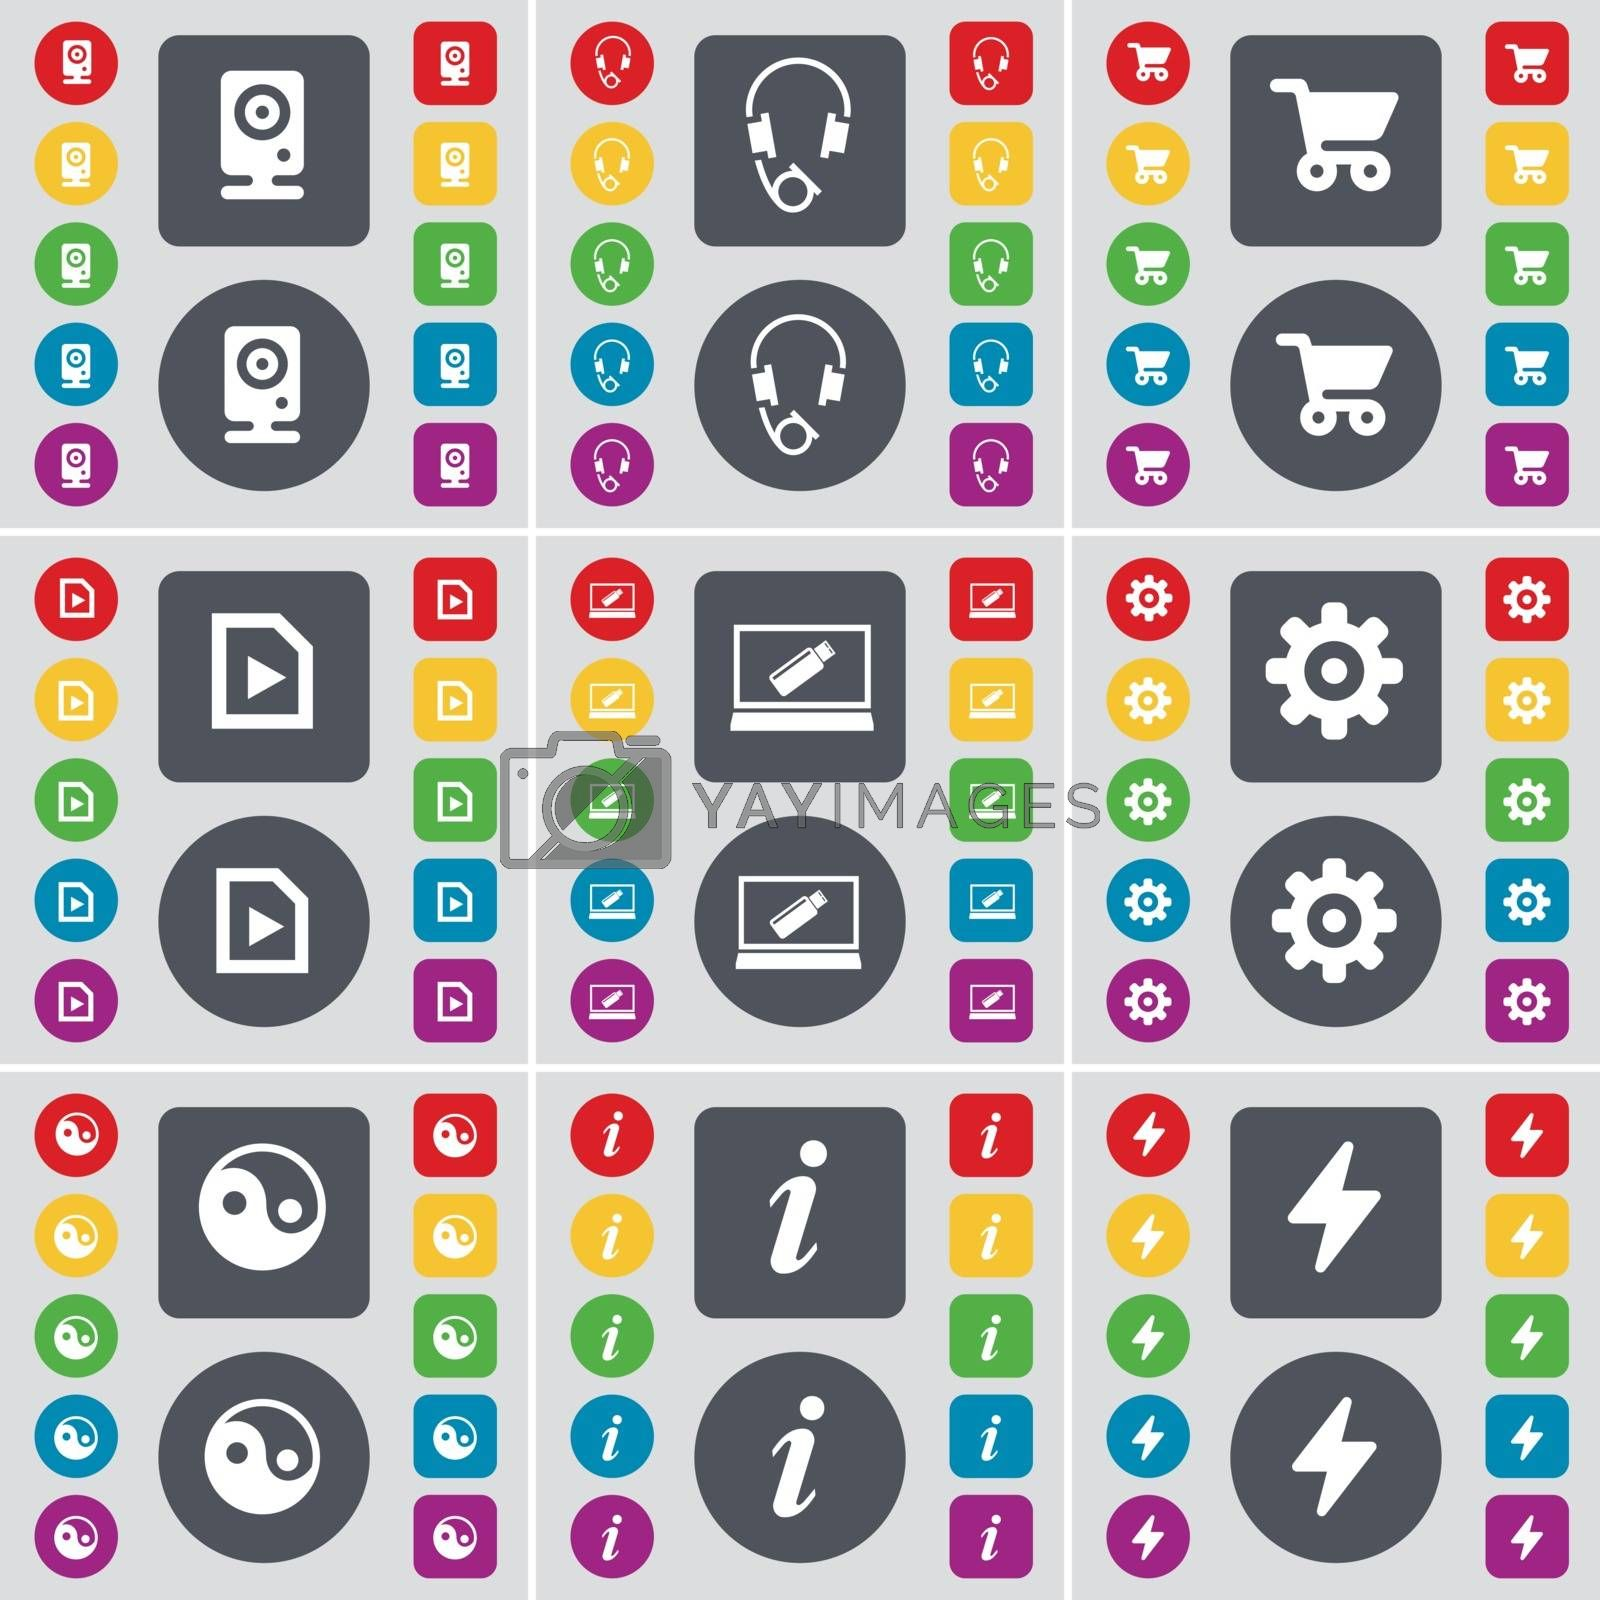 Royalty free image of Speaker, Headphones, Shopping cart, Media file, Laptop, Gear, Yin-Yang, Information, Flash icon symbol. A large set of flat, colored buttons for your design. Vector by serhii_lohvyniuk